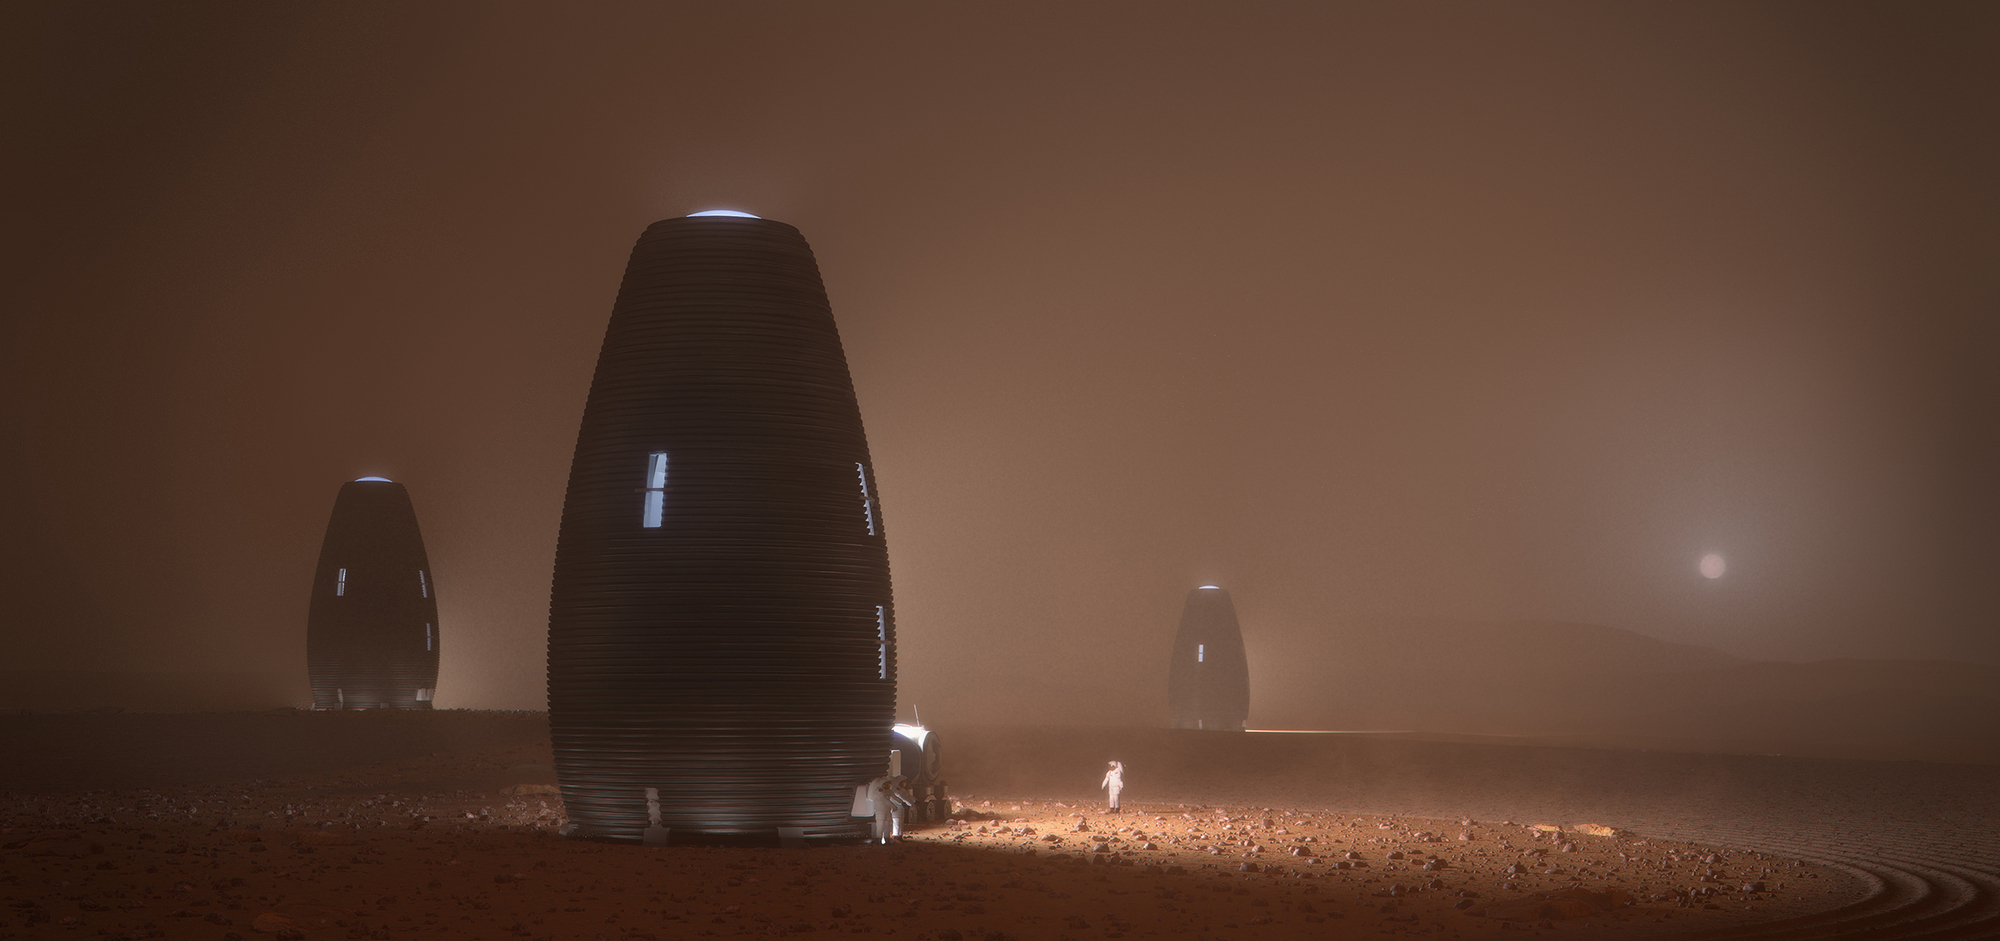 Architecture on Mars © Ai Space Factory